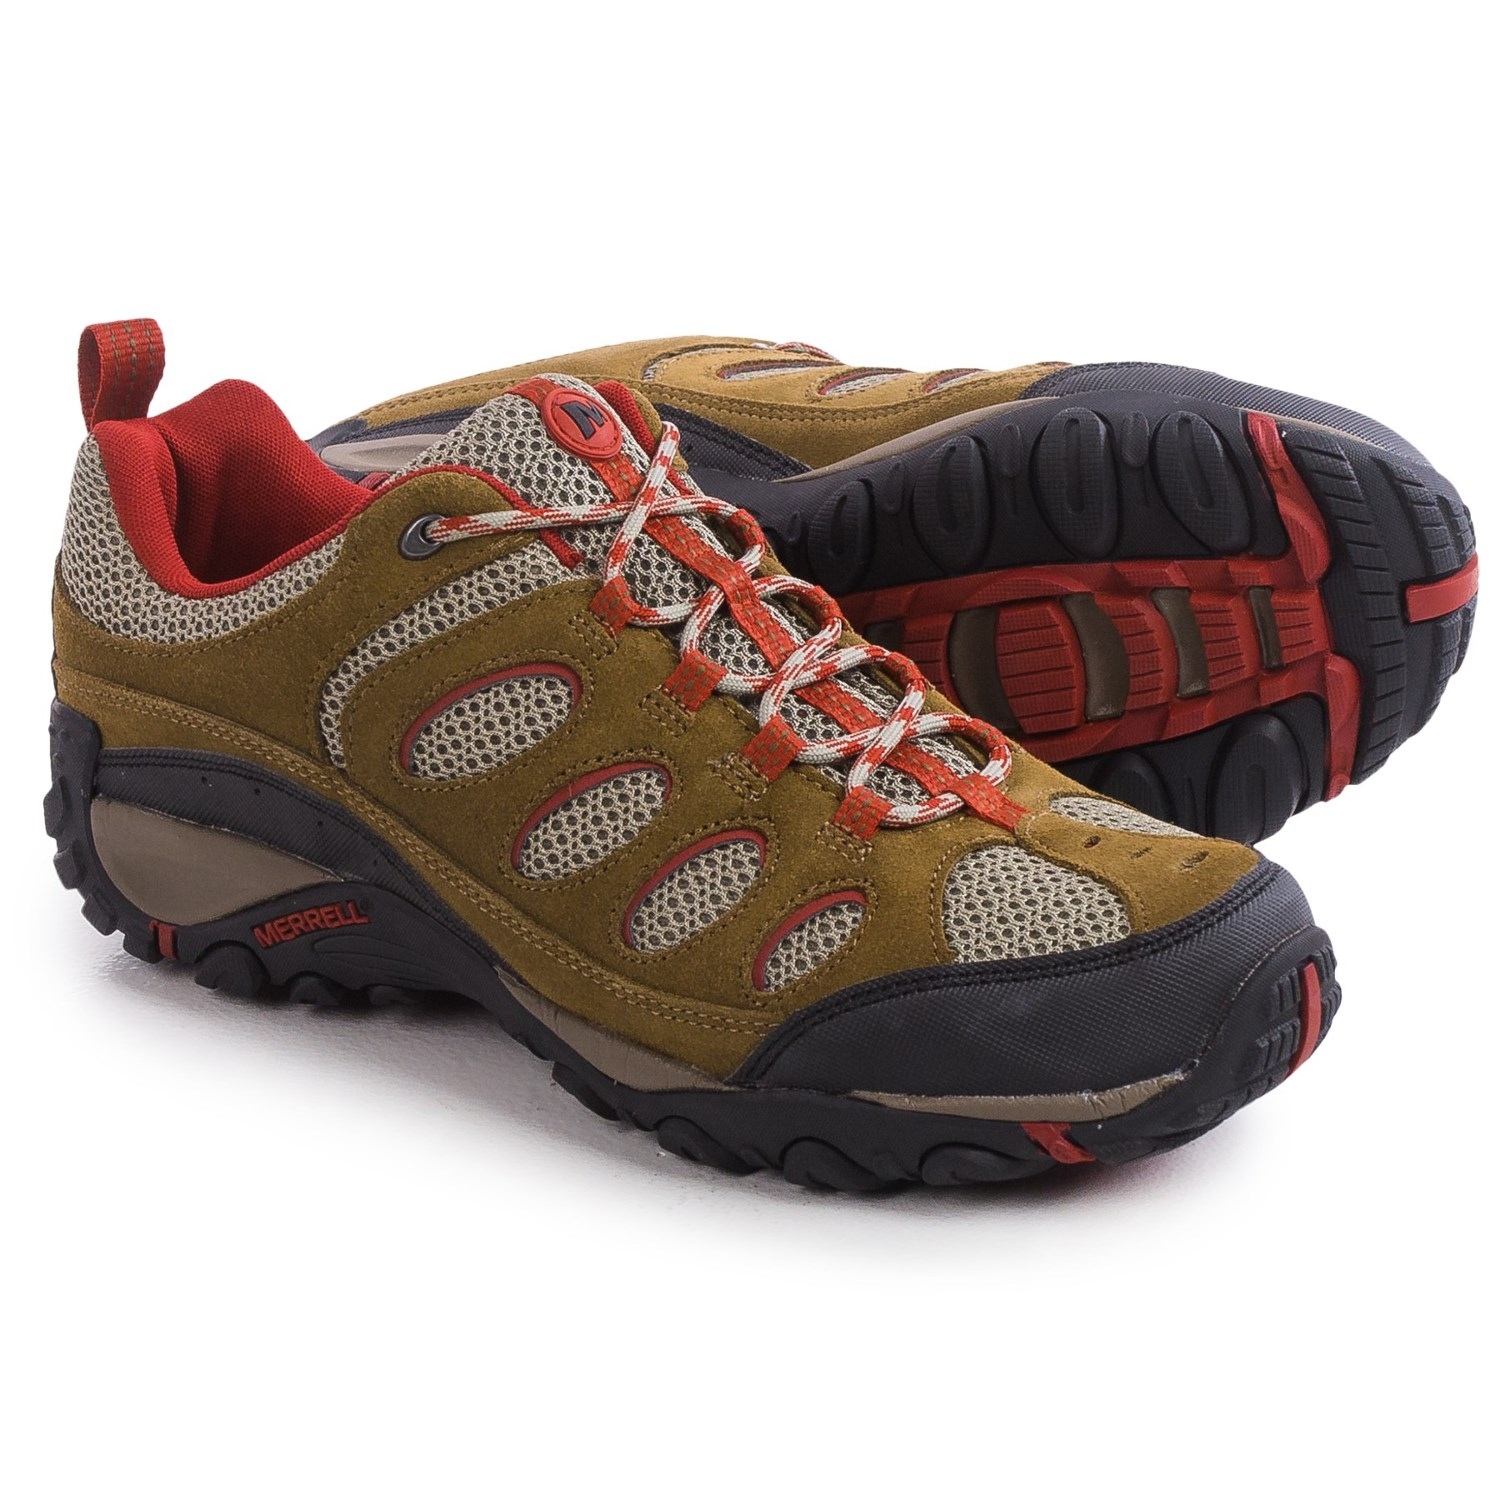 For Merrell, Moab stands for Mother-Of-All-Boots. Experience out-of-the-box comfort in waterproof Moab 2 WP Low men's hikers with their durable leather, supportive footbeds and Vibram traction. Available at REI, % Satisfaction Guaranteed.